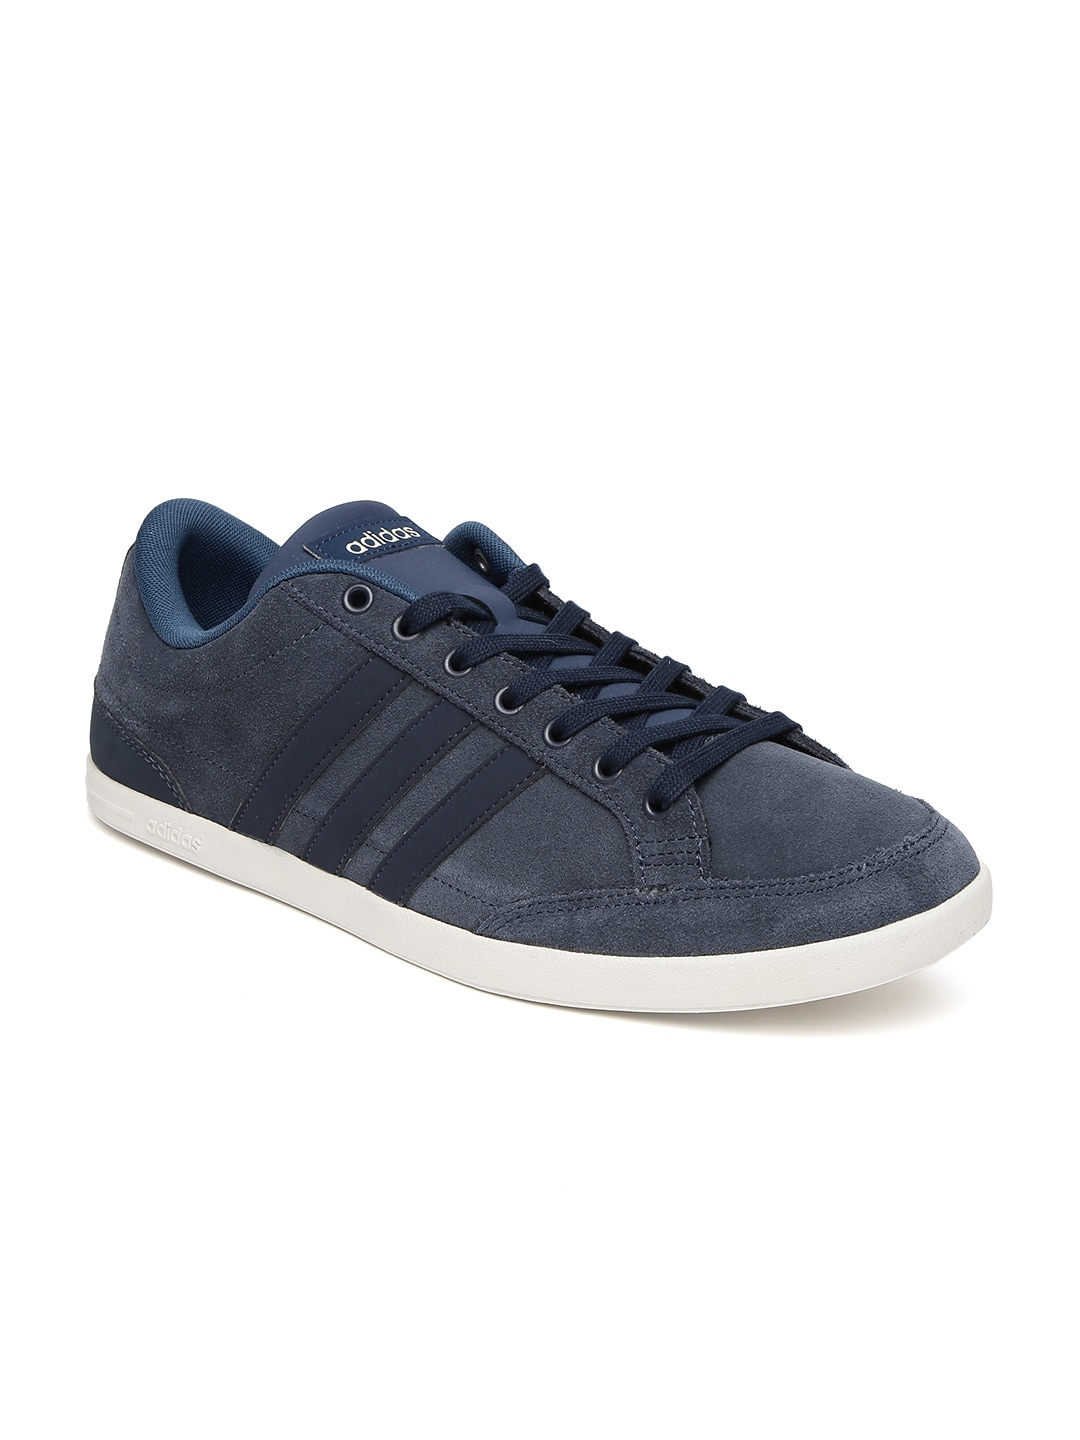 Shoes Adidas Neo